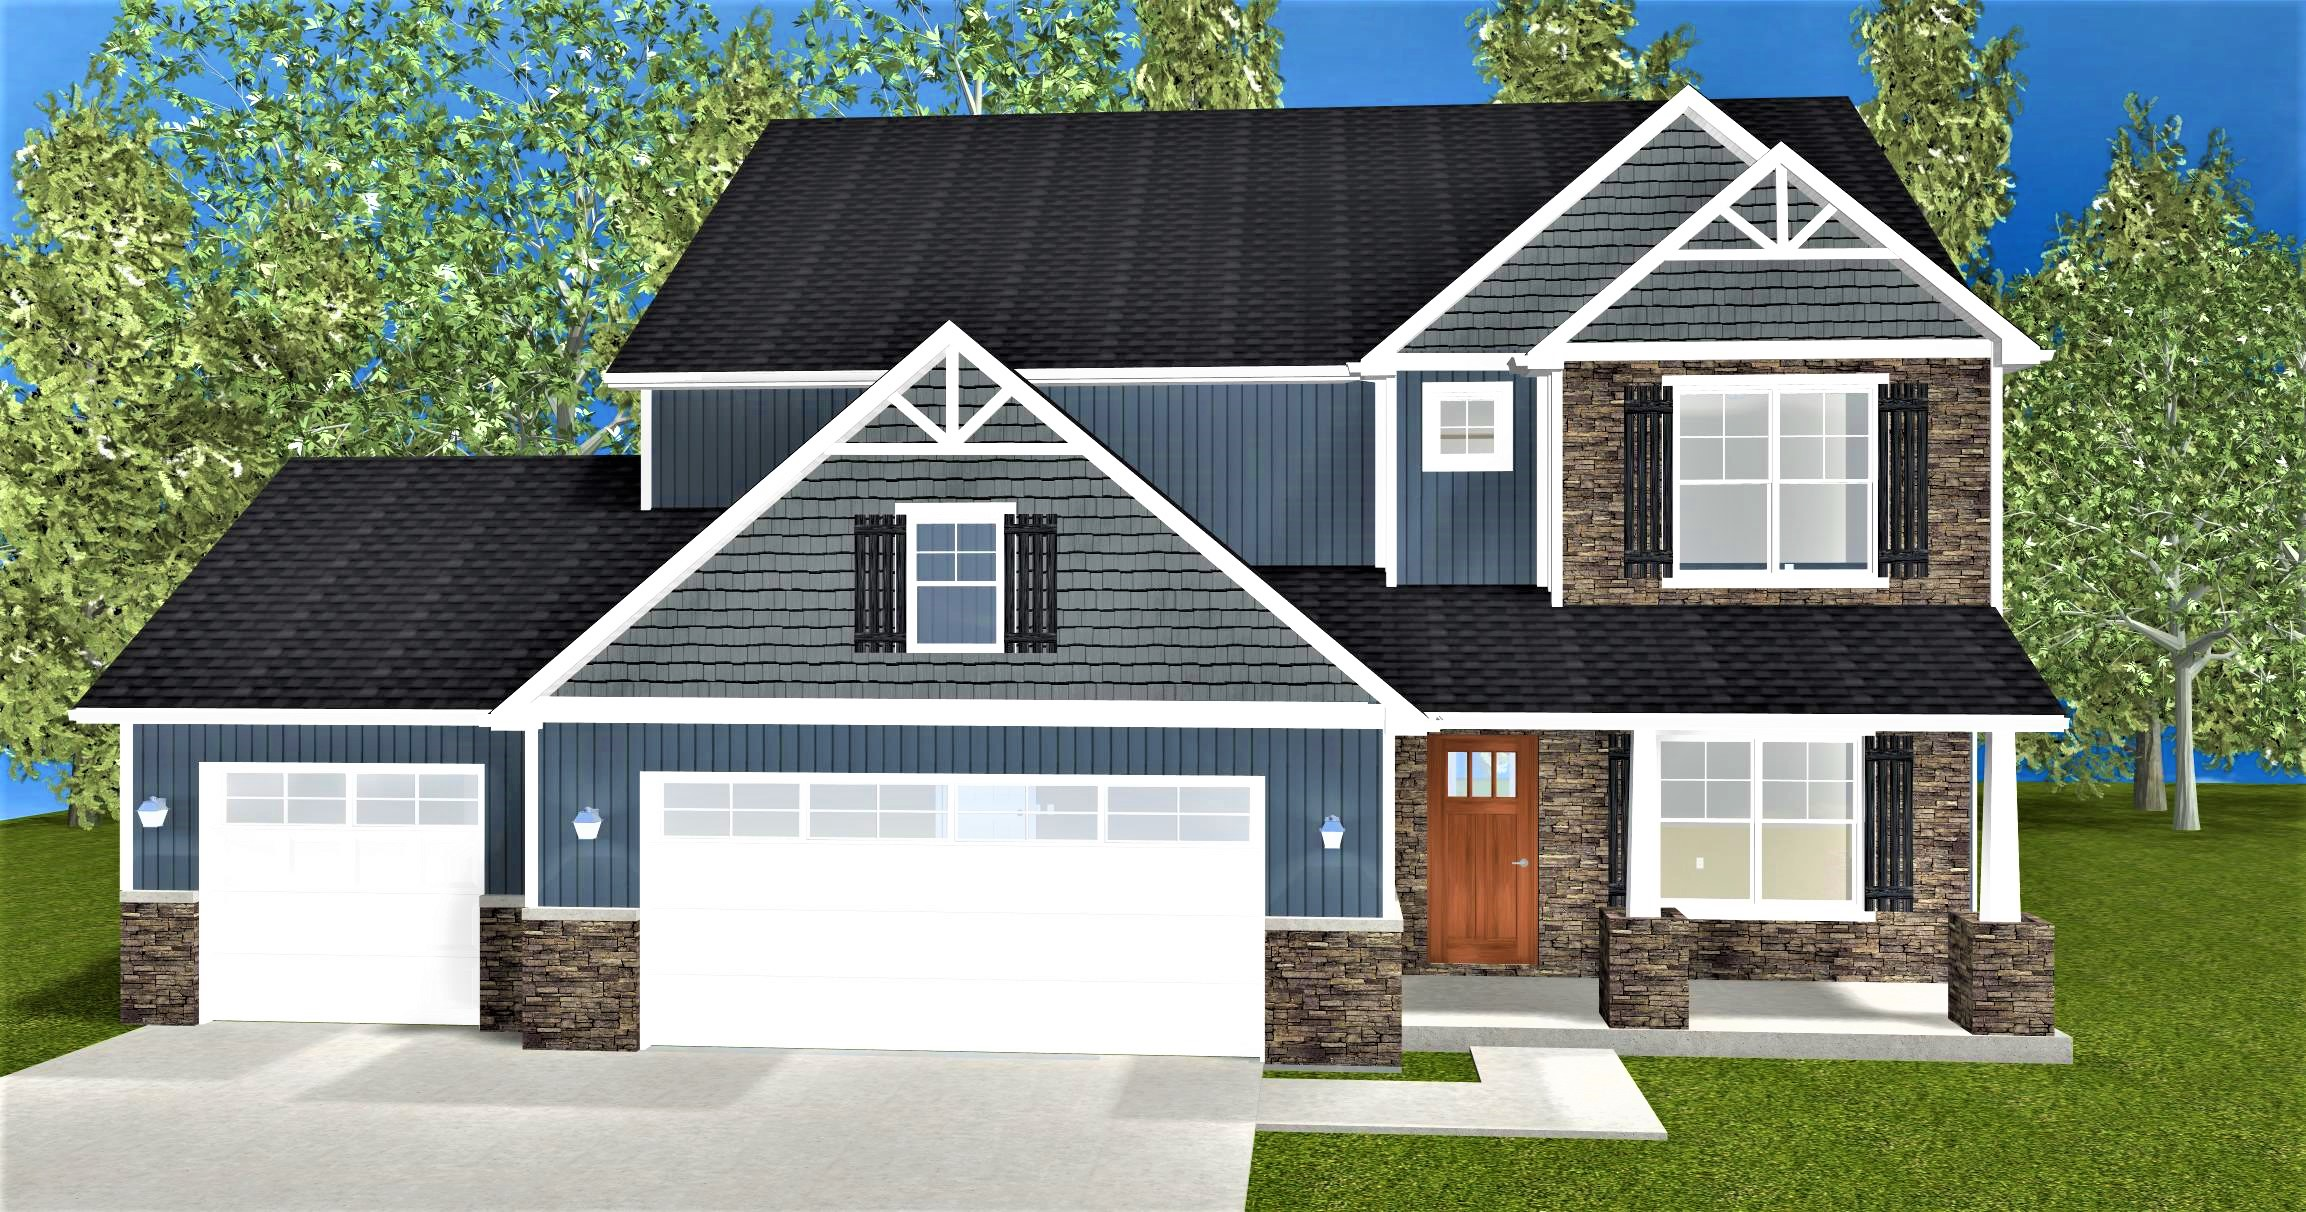 The Emma Grace – Starting at $321,900 with Standard Lot